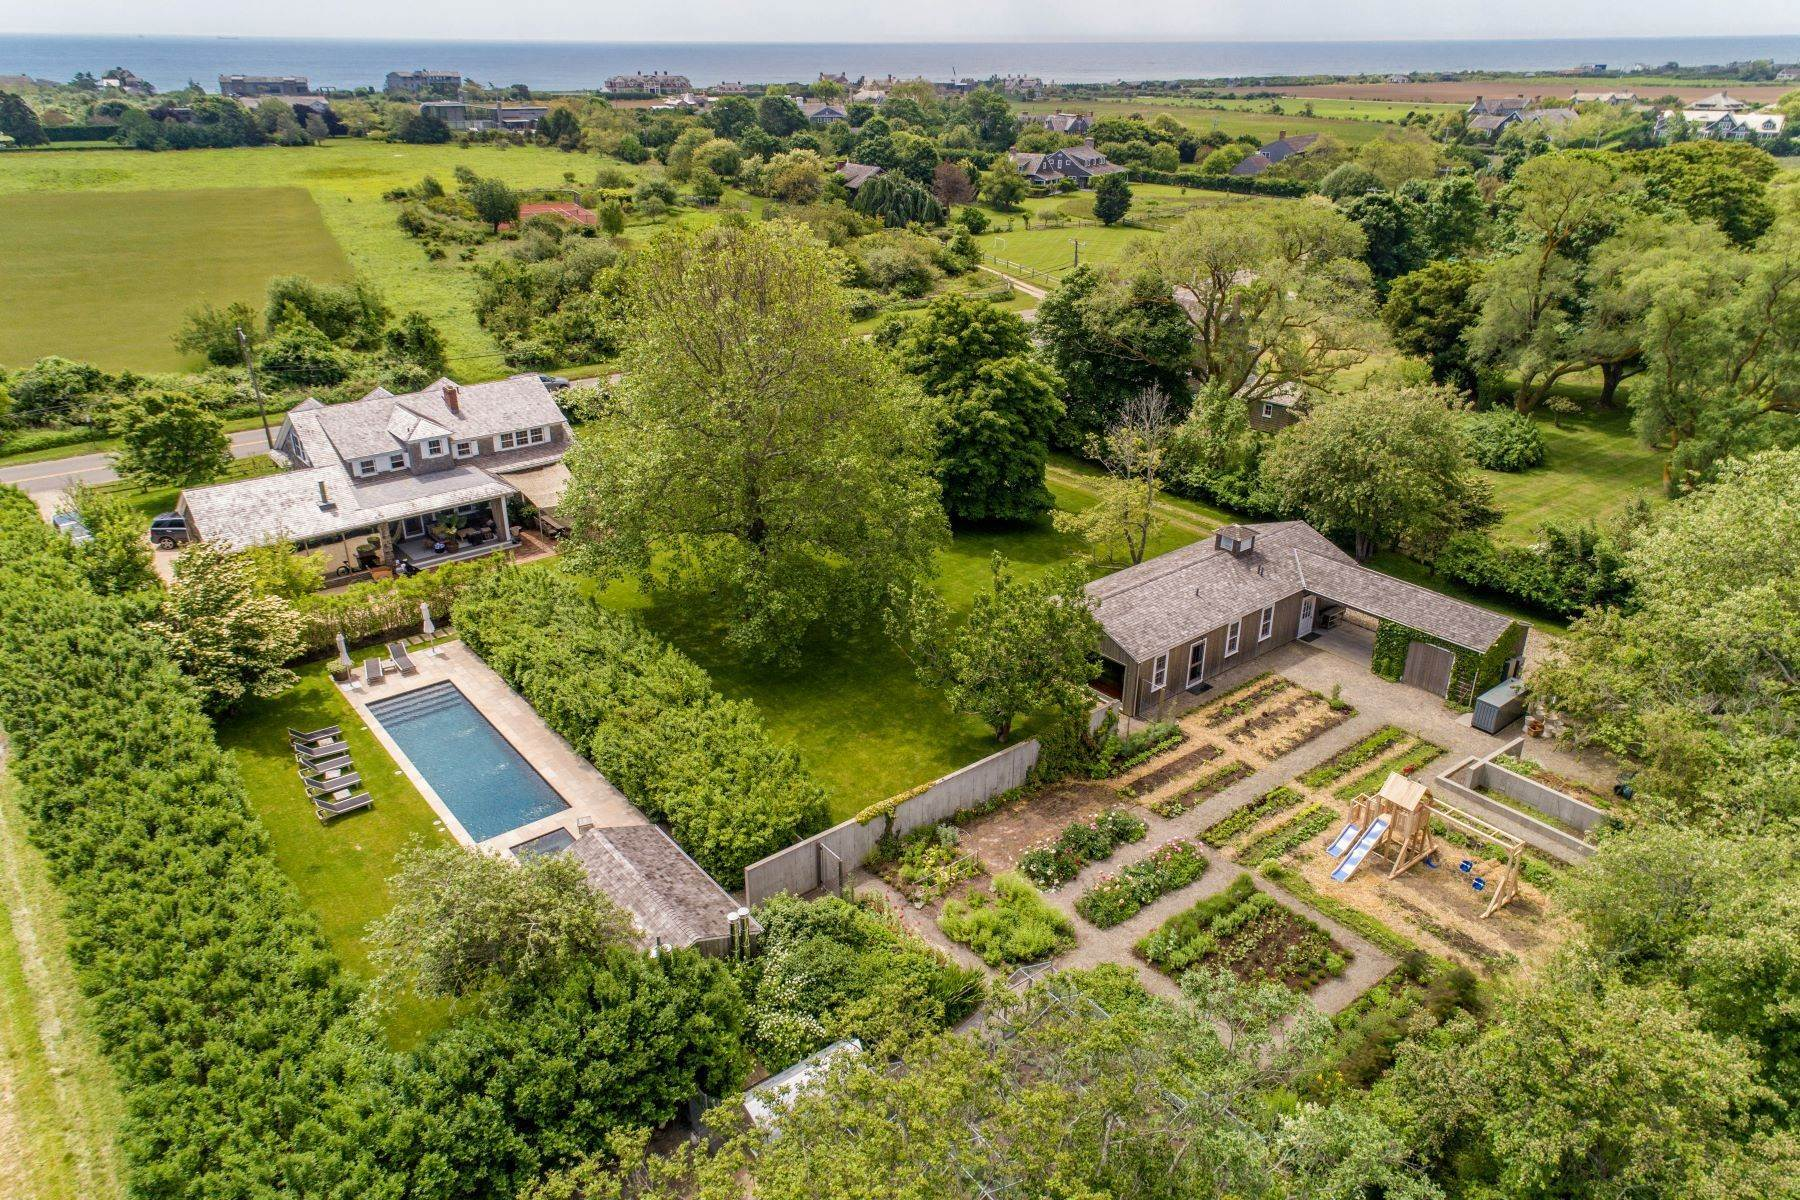 Single Family Homes for Sale at Ultimate Farm Chic Compound 98 Daniels Lane Sagaponack, New York 11962 United States